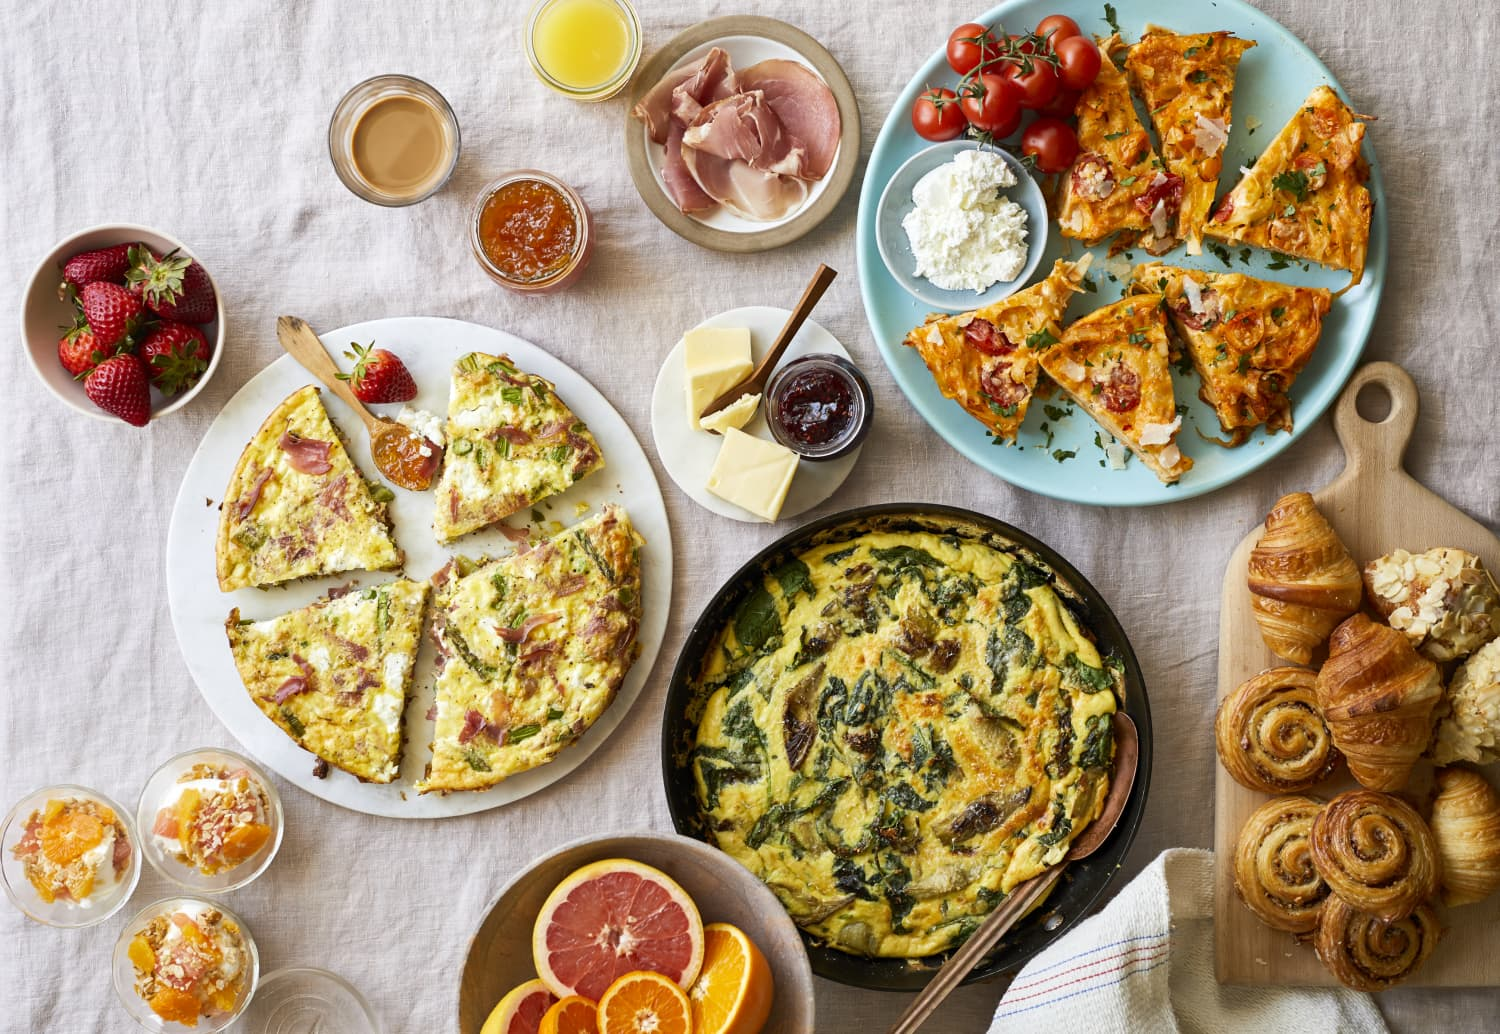 Our Most Popular Frittata Recipes